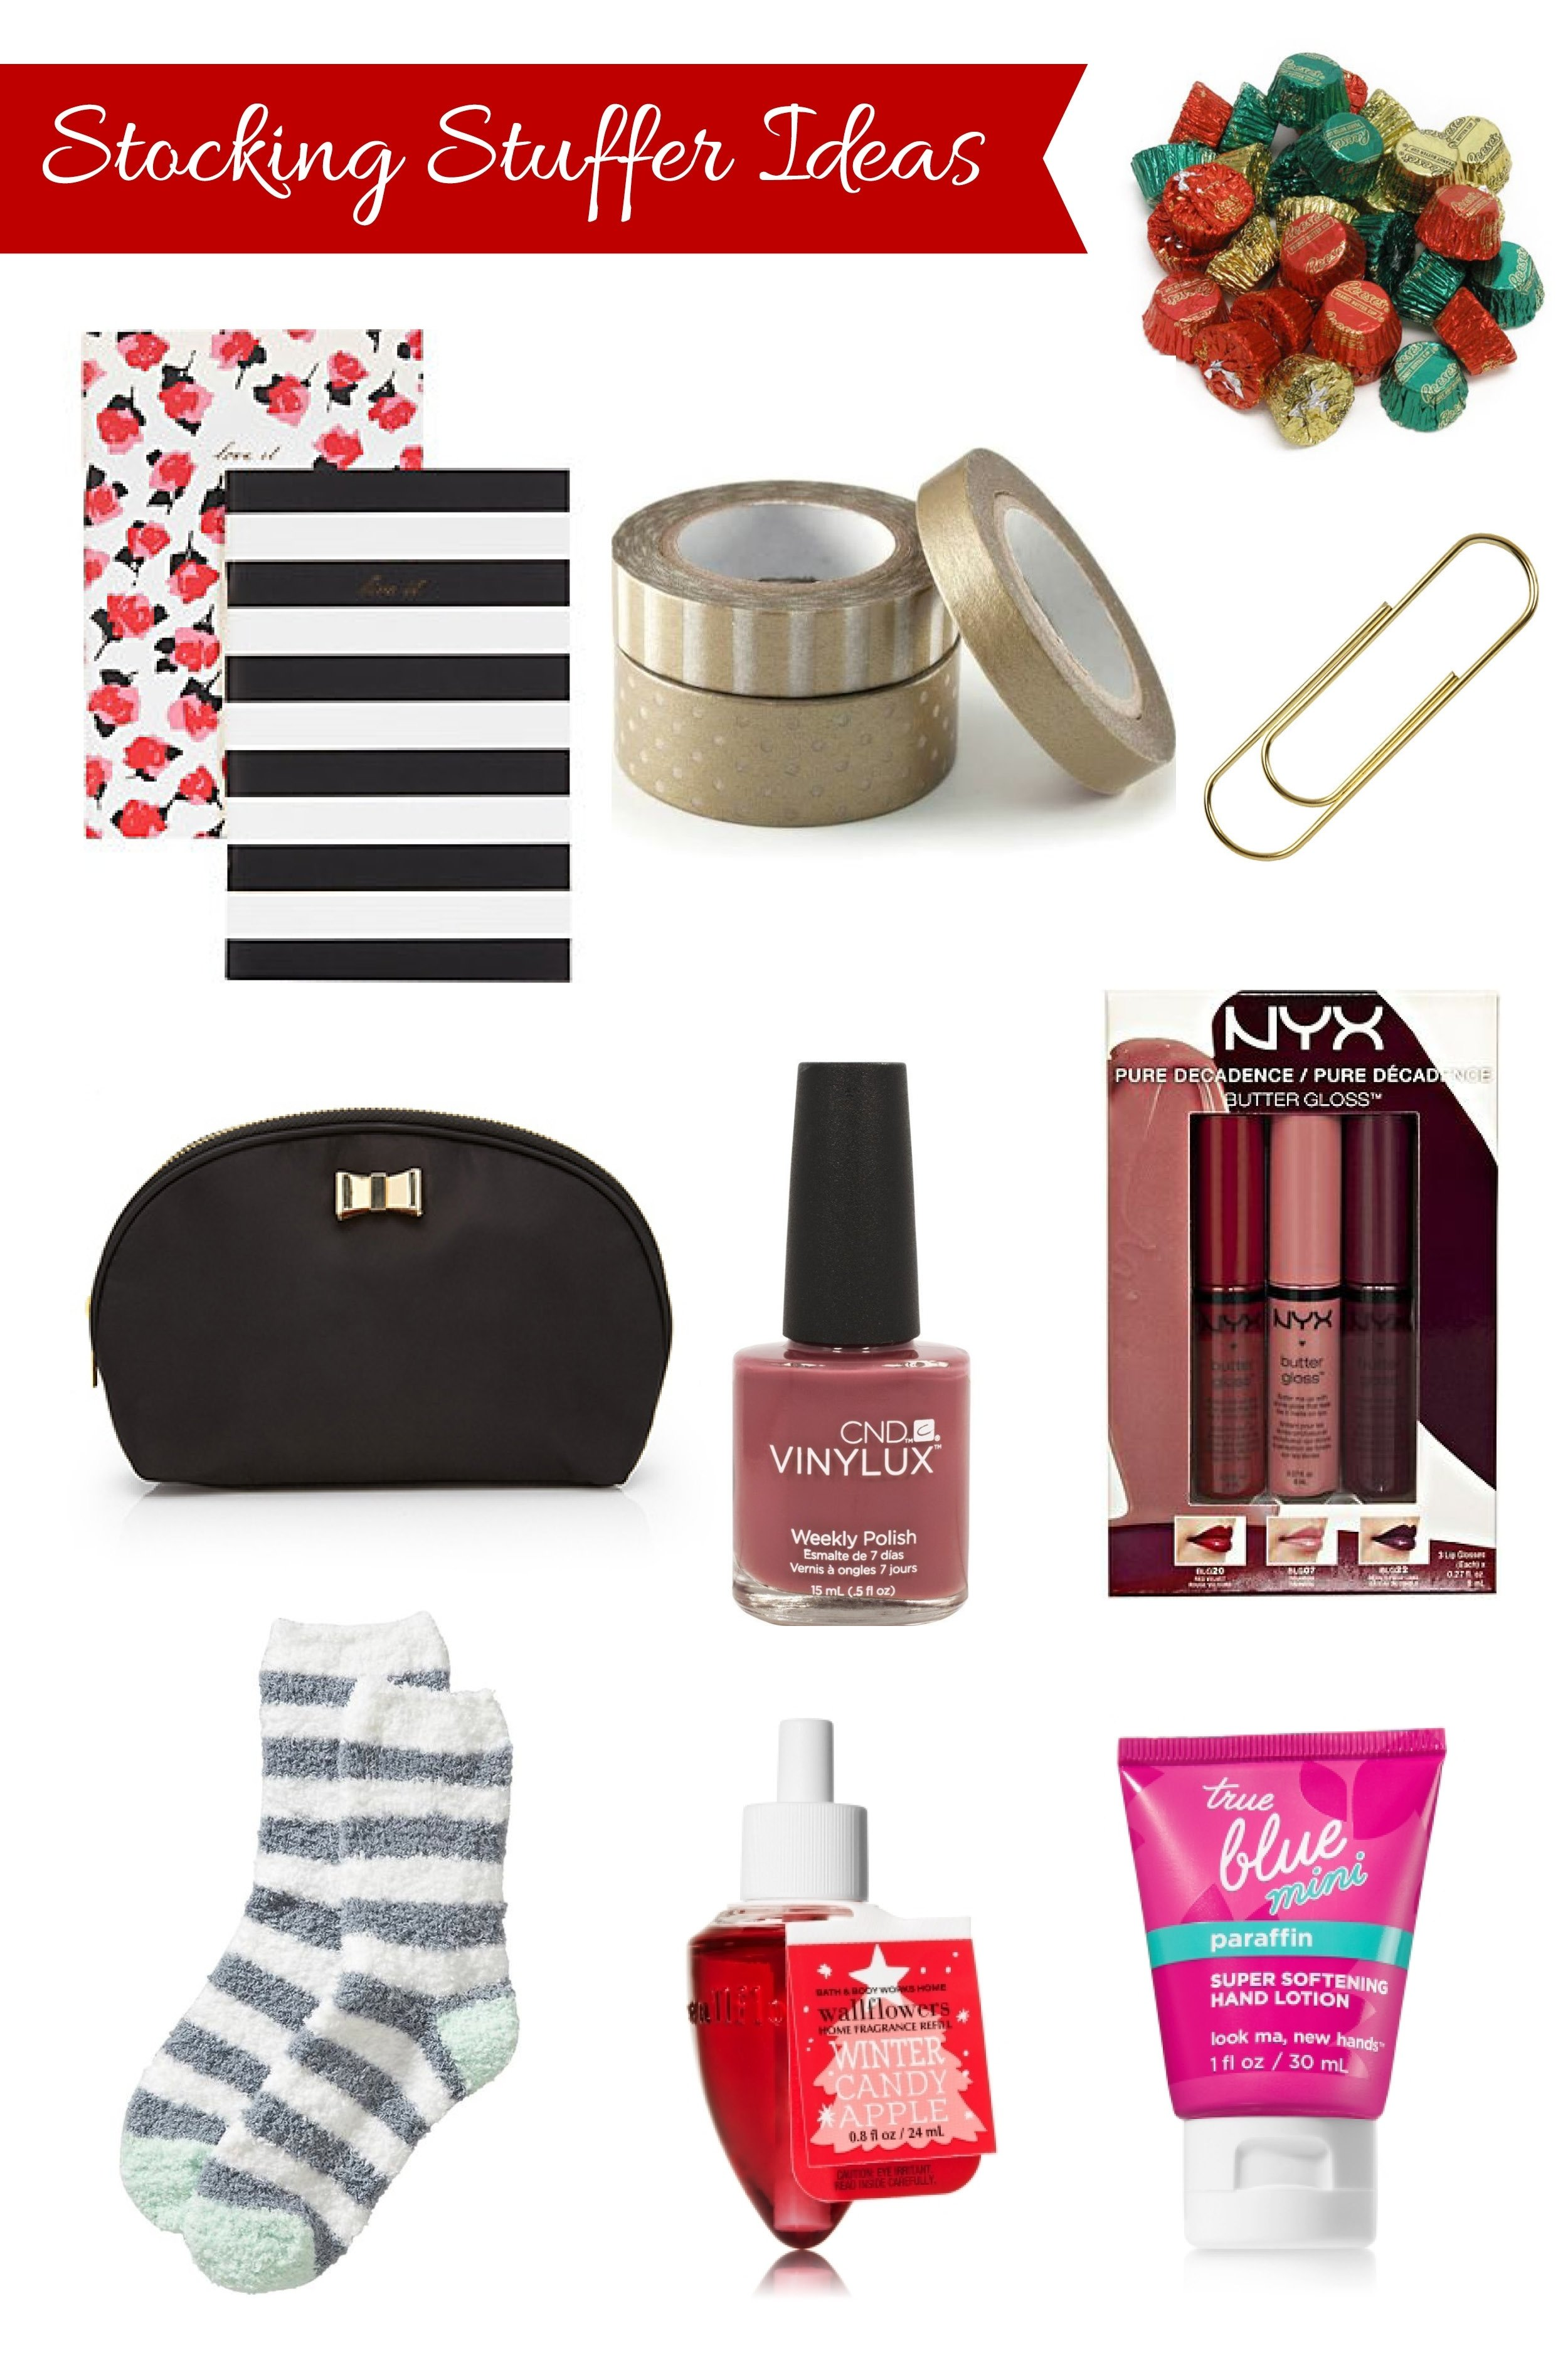 10 Lovable Stocking Stuffer Ideas For Her stocking stuffer ideas under 10 perpetually daydreaming 3 2021